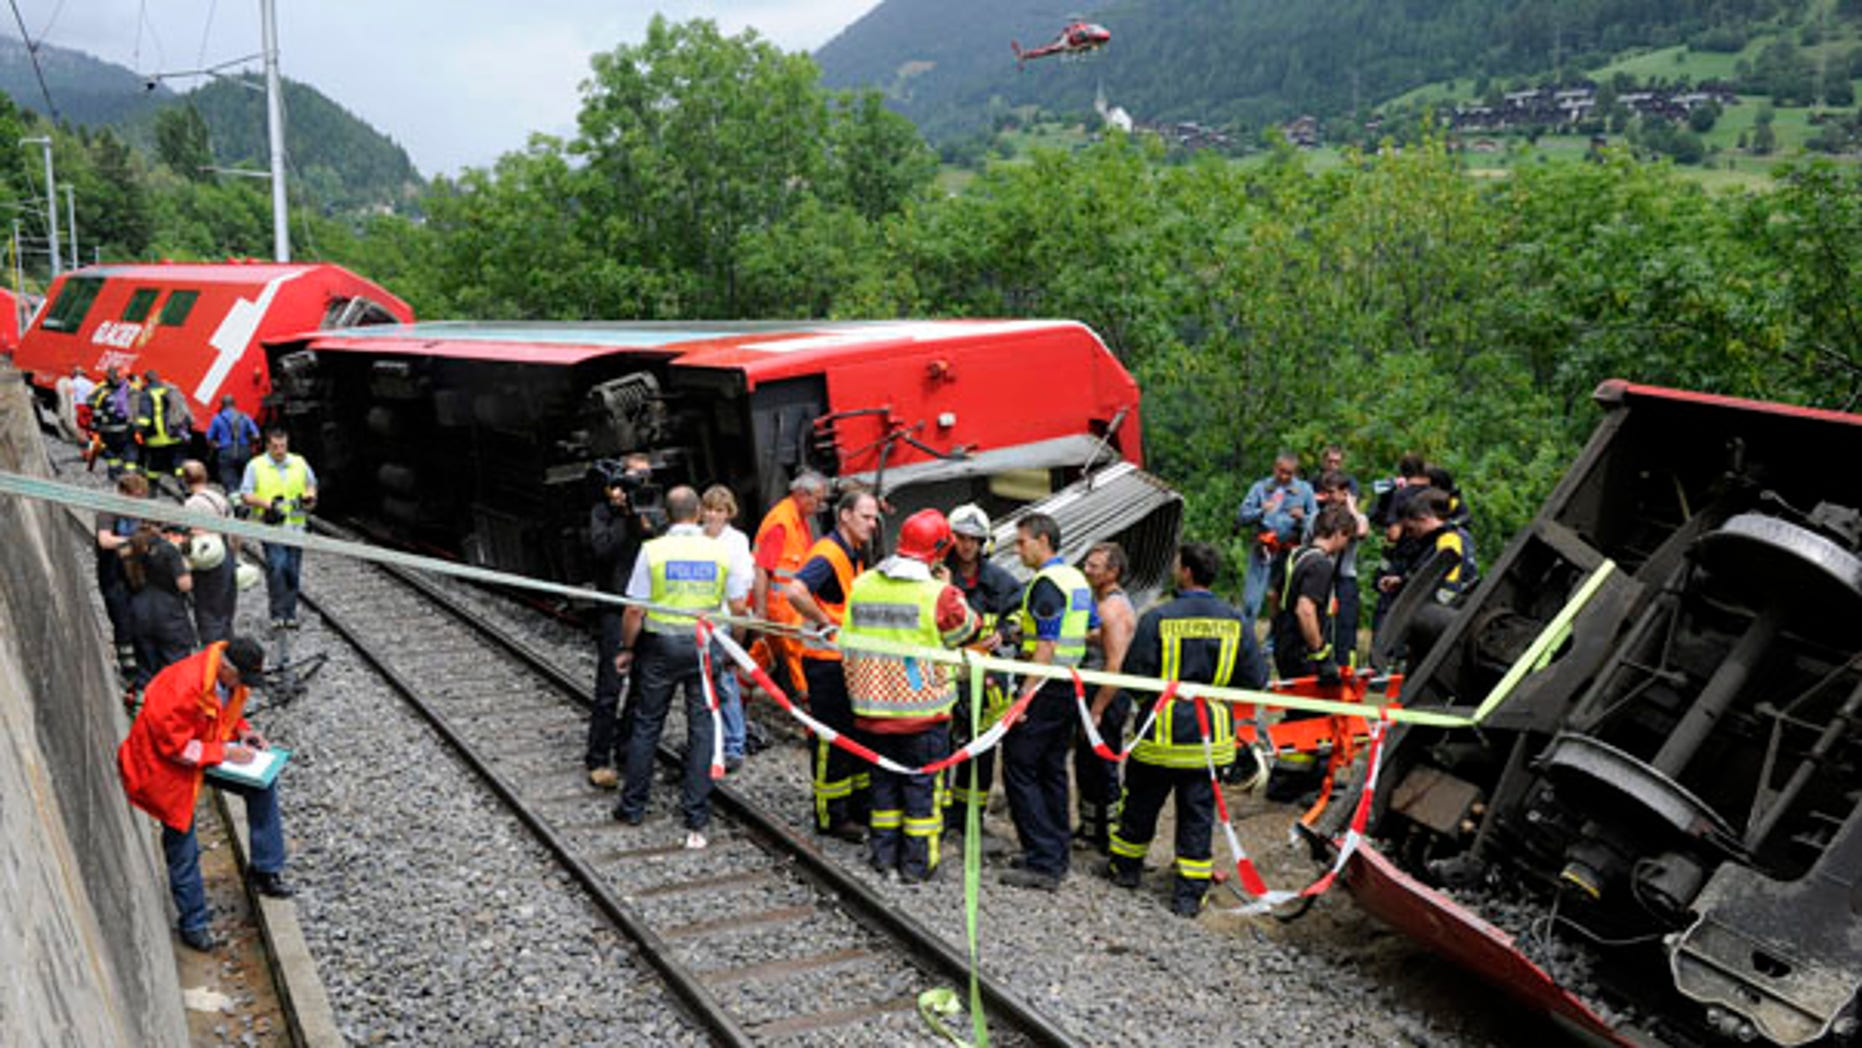 July 23: Rescue workers survey the damaged carriages of a Glacier Express passenger train after the trouist train derailed in Fiesch, Switzerland, killing one passenger and injuring more than 40.